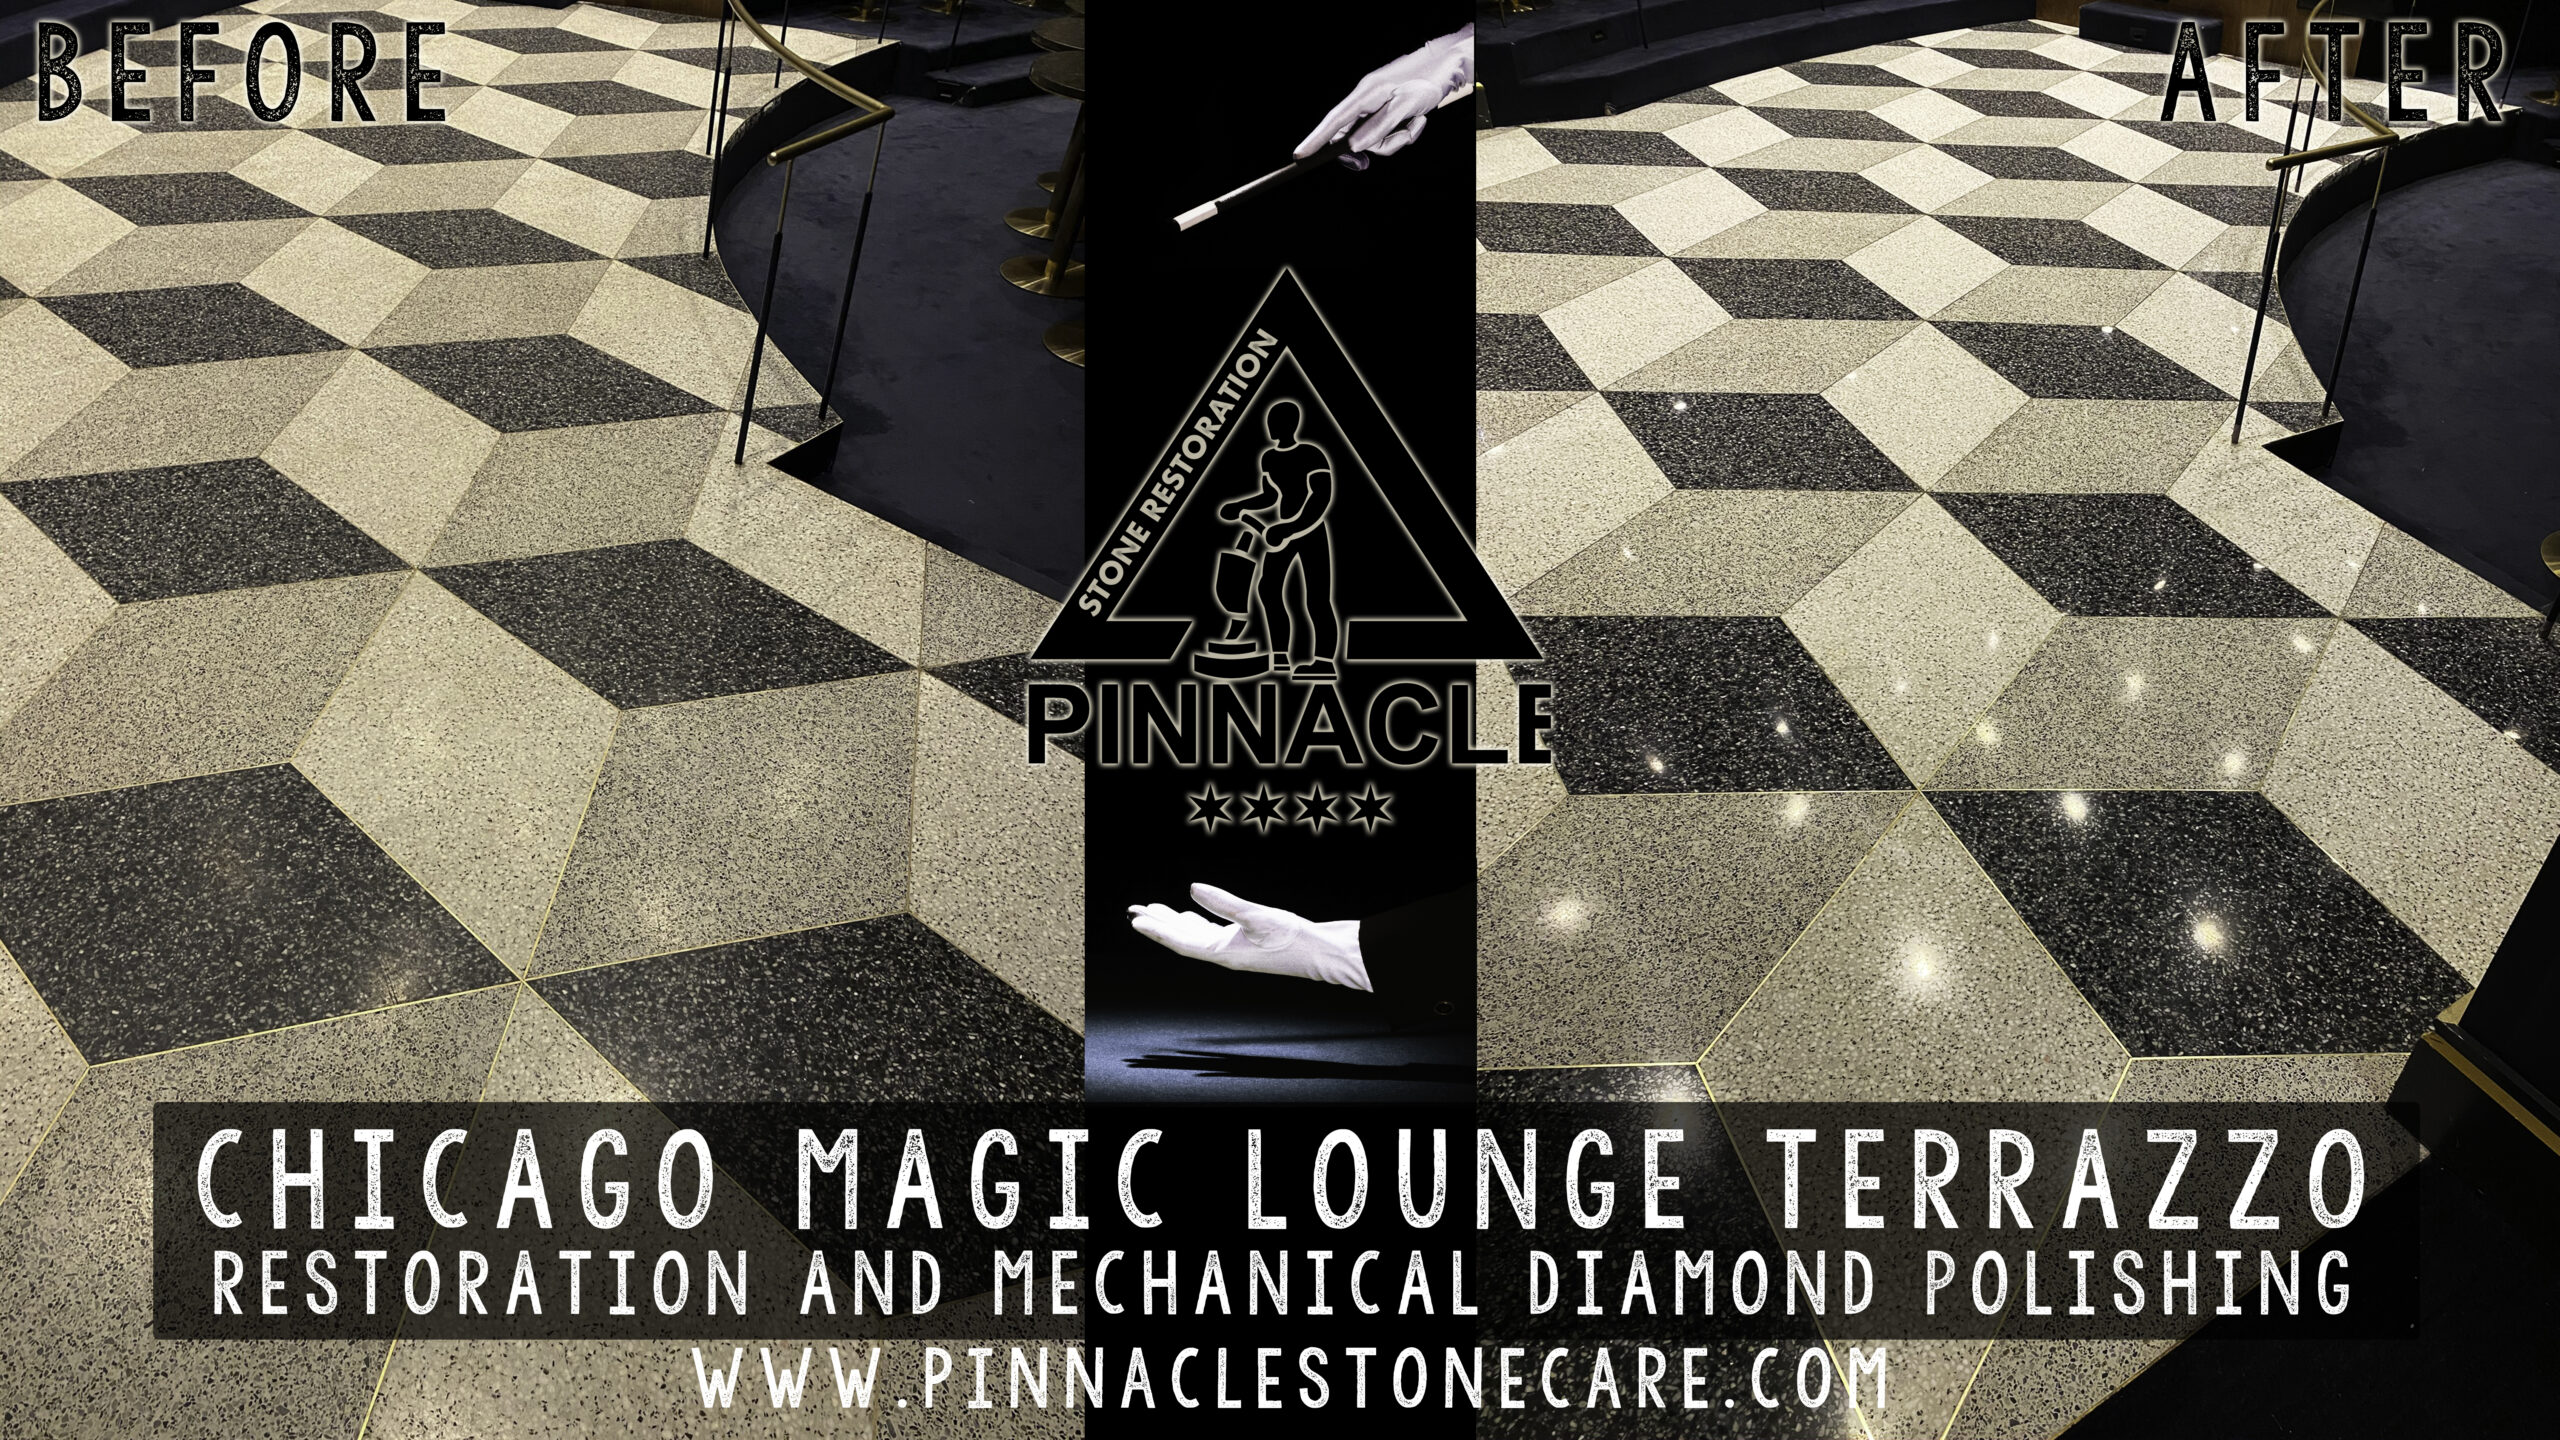 Chicago Magic Lounge terrazzo restoration and mechanical diamond polishing